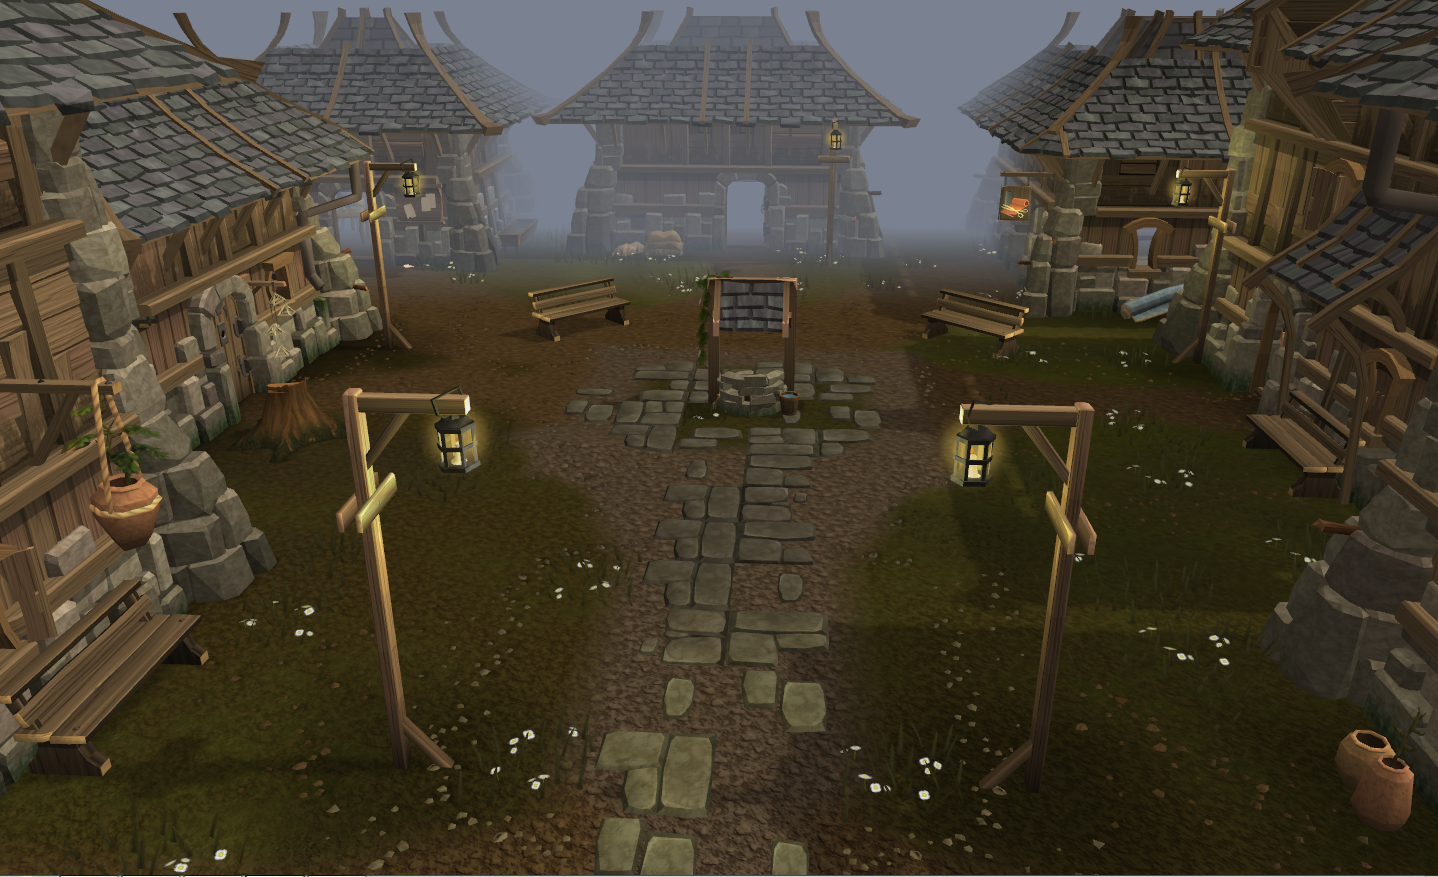 Runescape MMORPG game review picture of rimmington in runescape hd 3